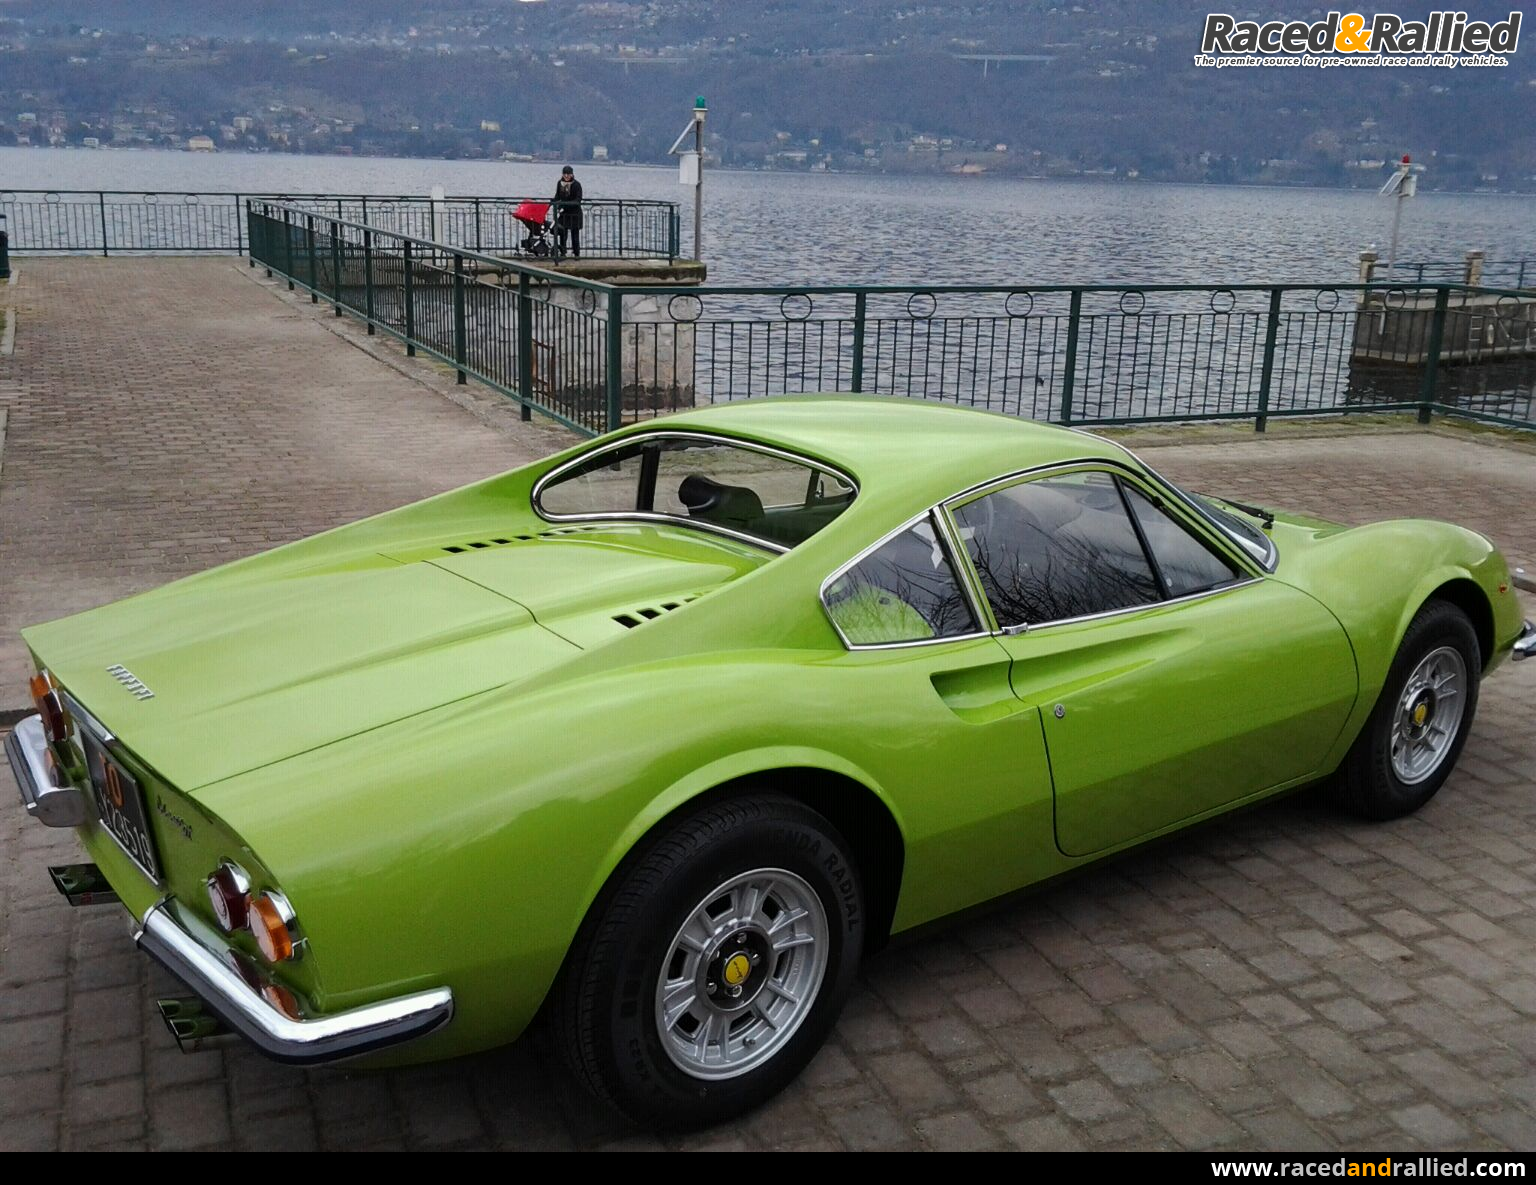 Off Road Vehicles For Sale >> Unique Ferrari Dino 246 GT | Classic & Vintage cars for ...